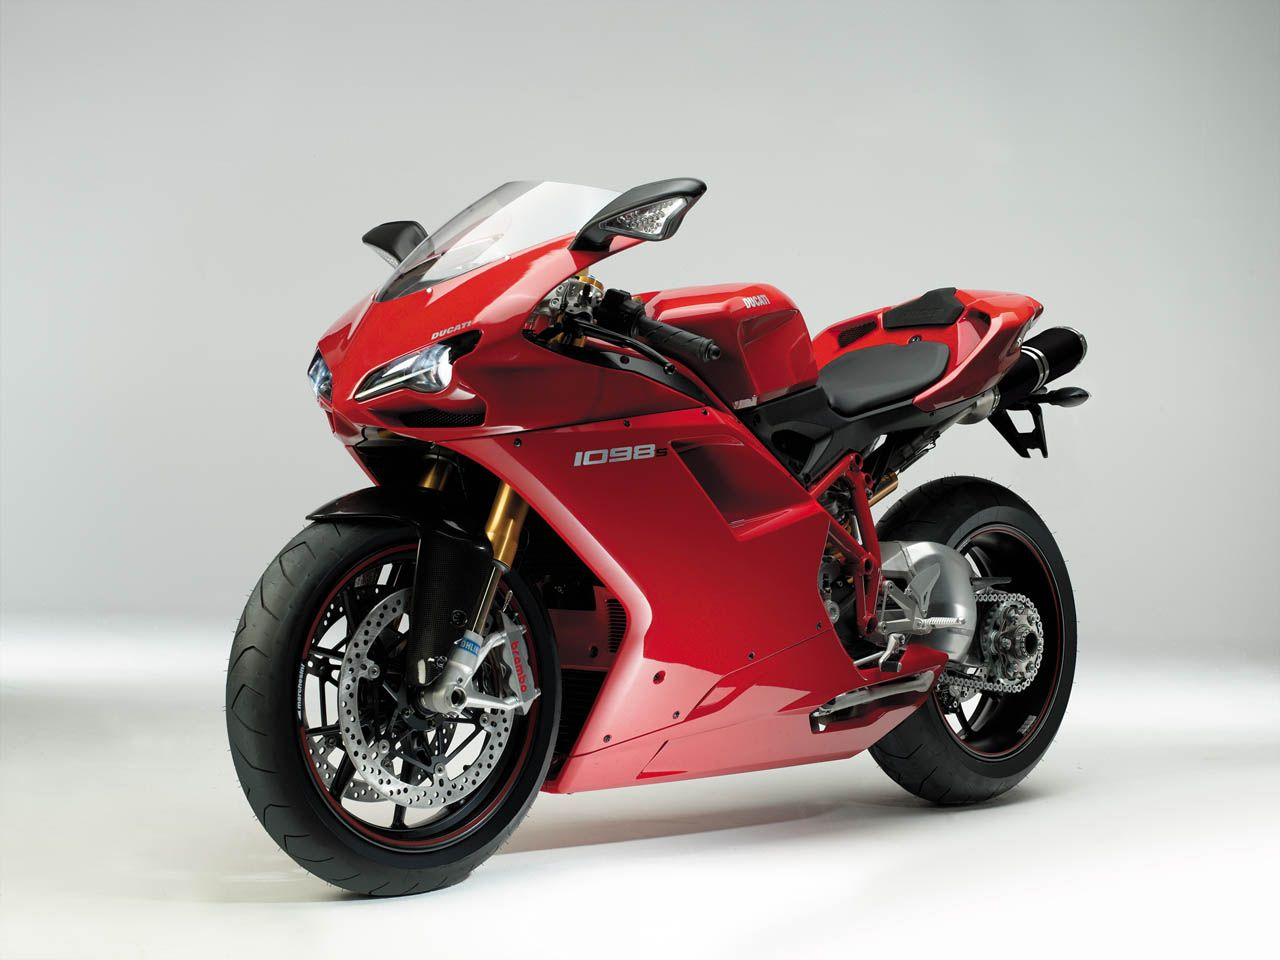 sport bikes | Ducati Sports Bike - Wallpapers, Pictures ...